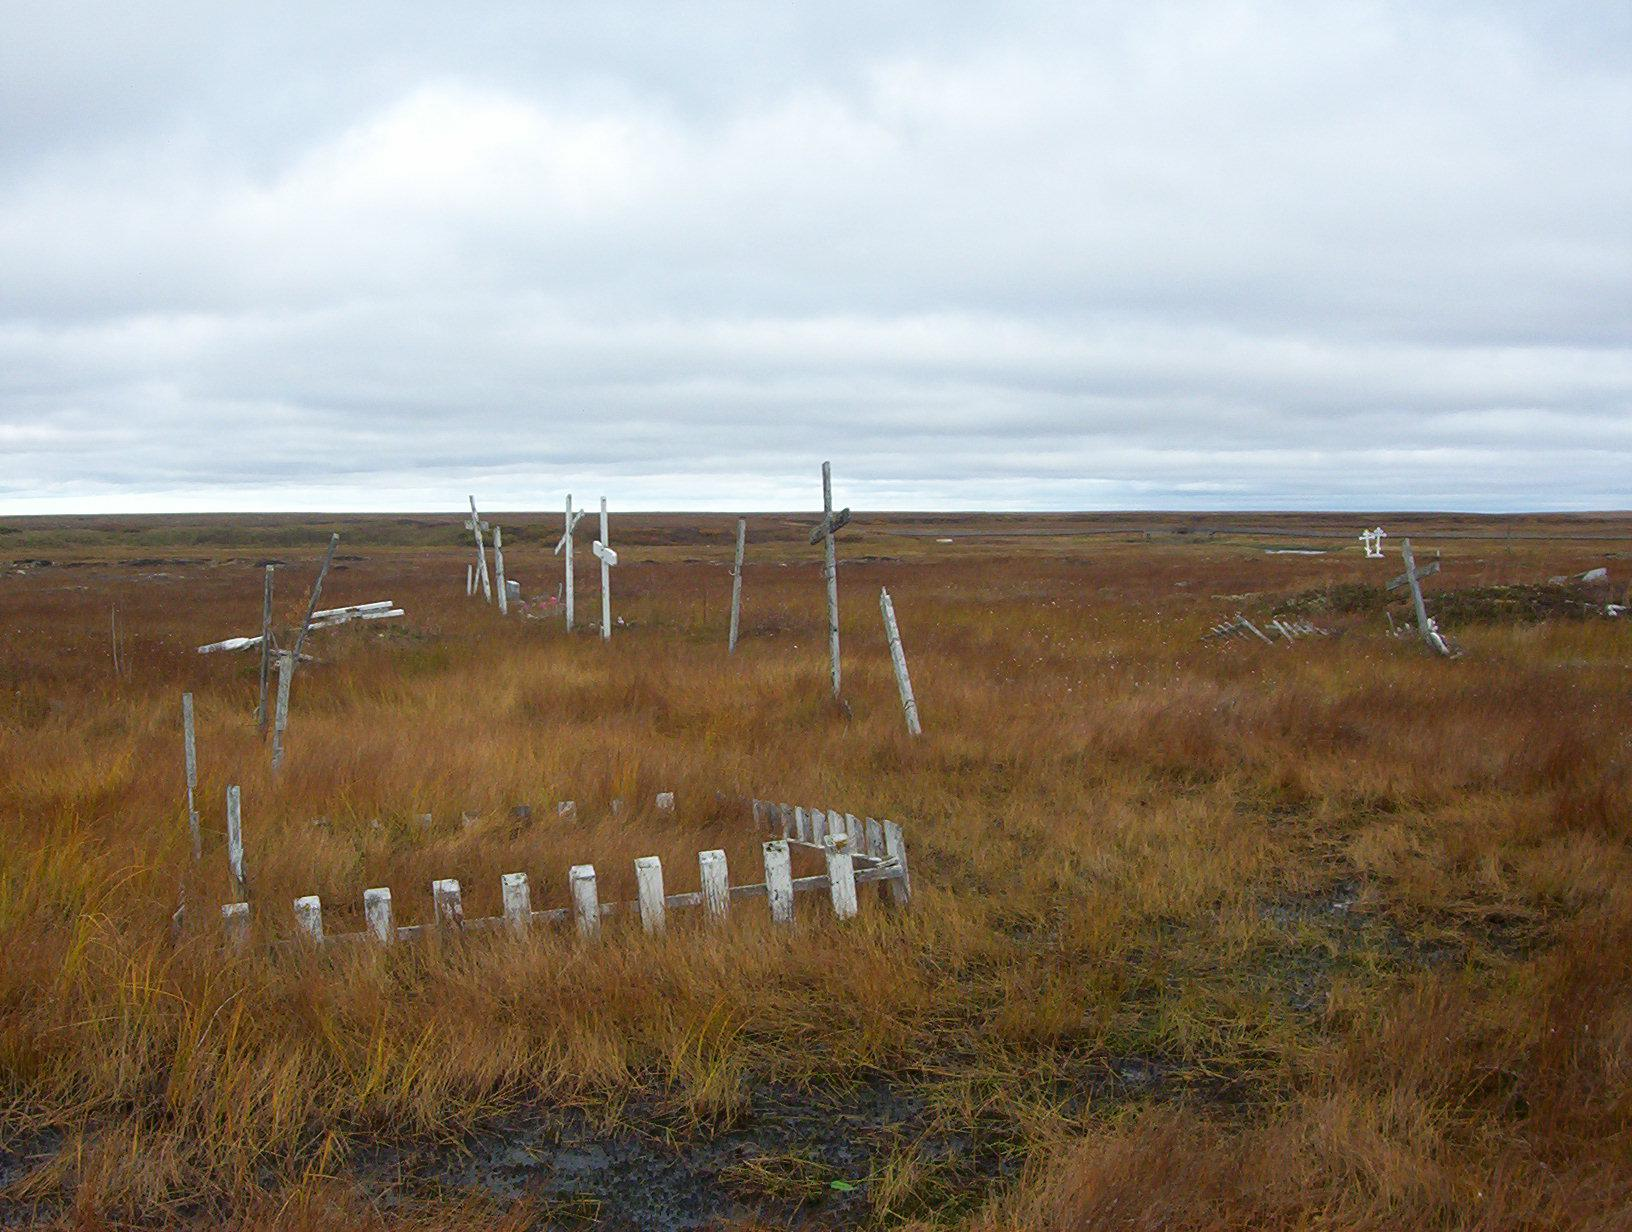 As the permafrost thaws, Kongiganak's cemetery is turning into swampland. Community members are now laying their loved ones to rest on raised platforms above ground. (Photo Teresa Cotsirilos/KYUK)